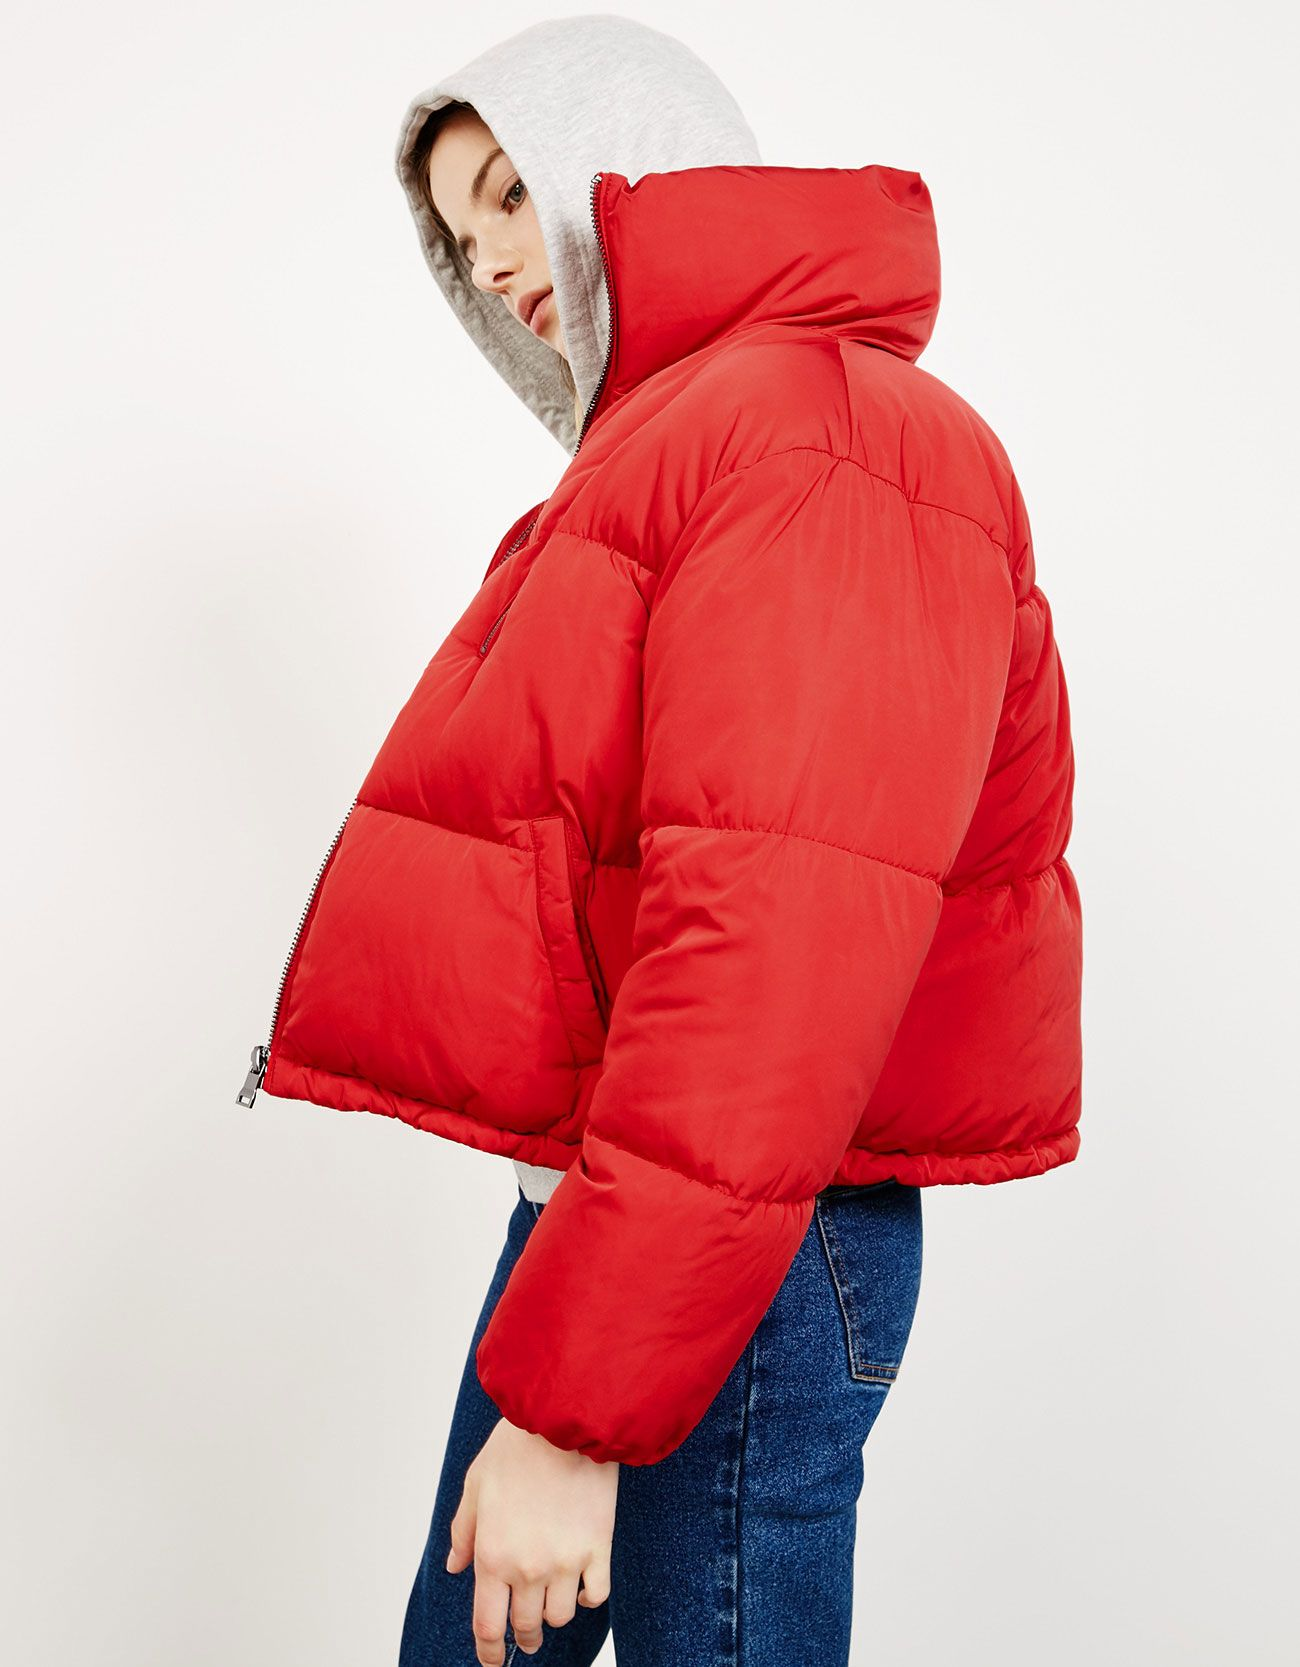 Puffy Cropped Quilted Jacket Discover This And Many More Items In Bershka With New Products Every Week Puffer Jacket Outfit Chilly Day Outfit Quilted Jacket [ 1667 x 1300 Pixel ]